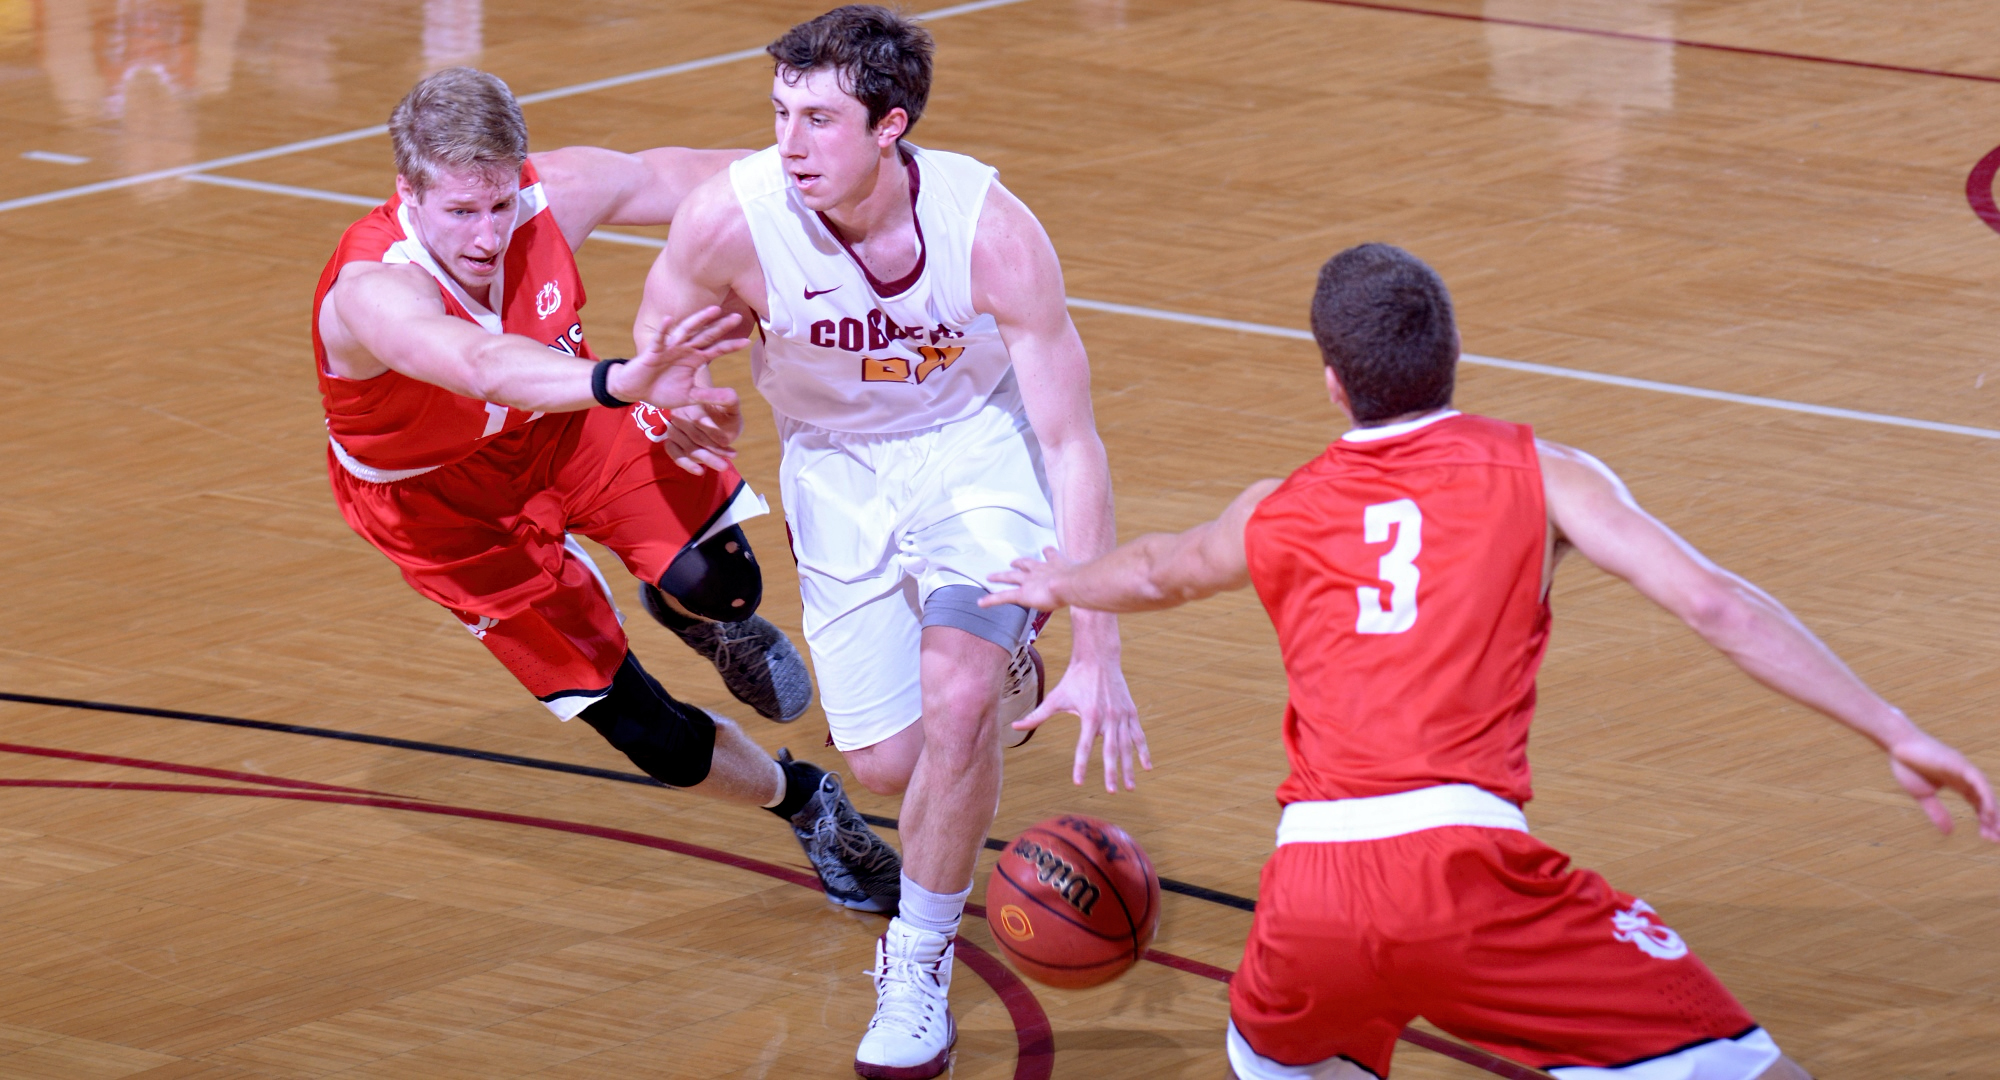 Cobber senior Austin Nelson dribbles by former high school teammate Aaron Lien on his way to the basket in Concordia's game with MSU Moorhead.